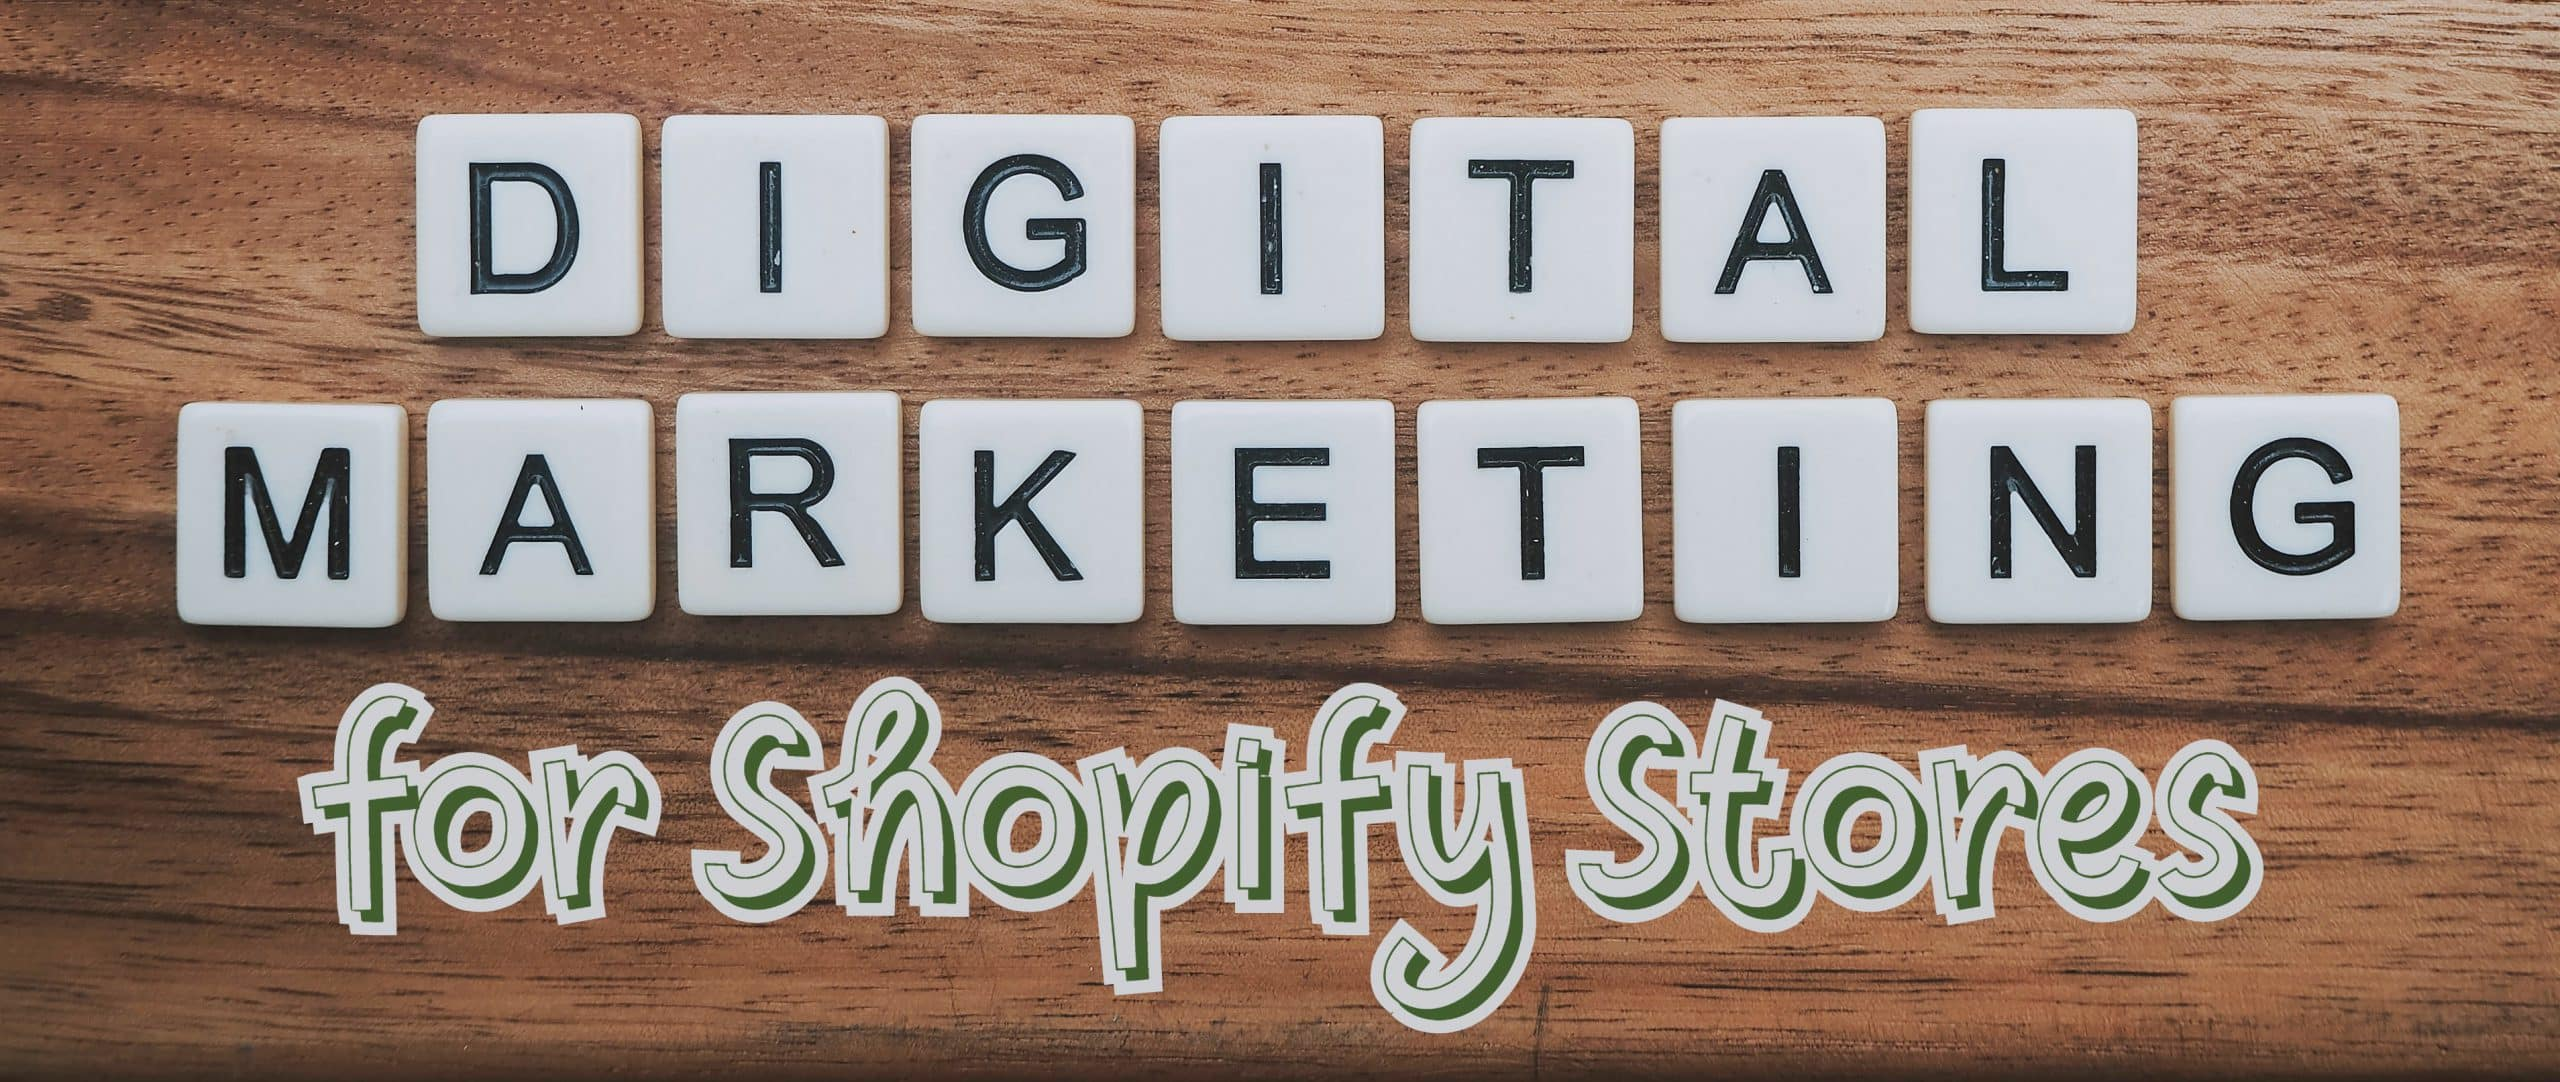 Digital marketing for Shopify stores